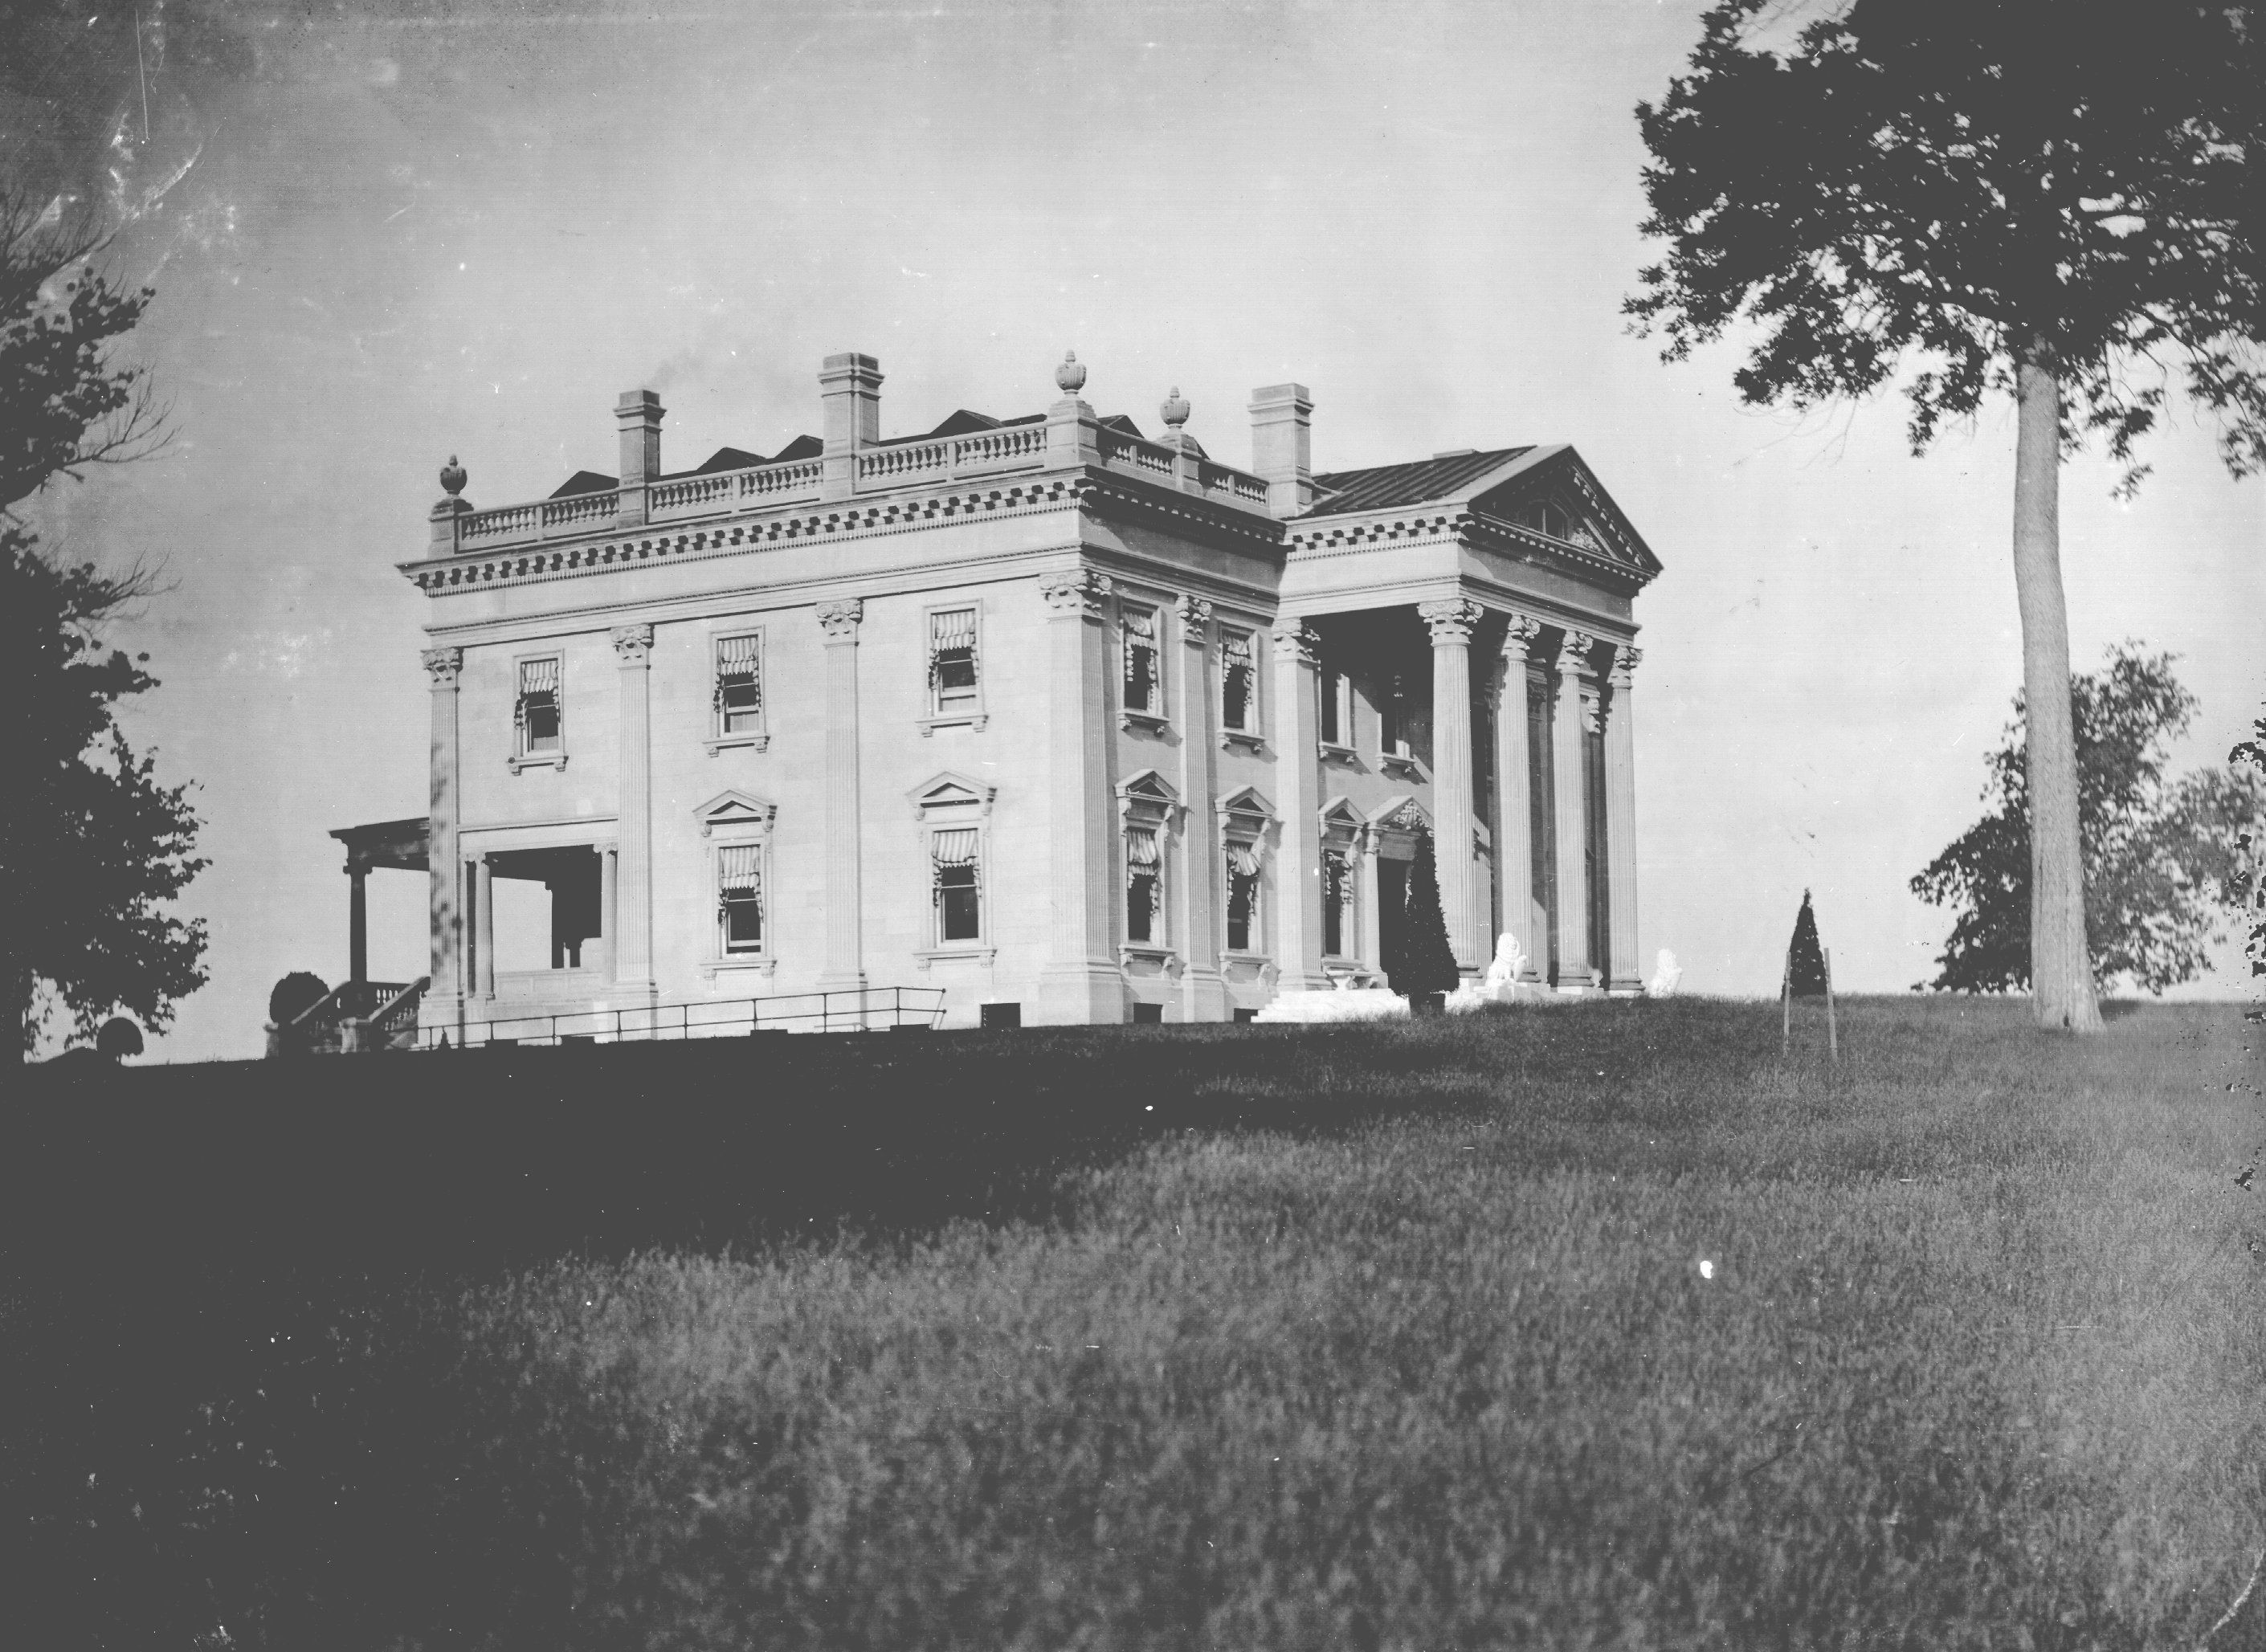 Dallas texas french chateau home photograph 4540 - Another View Of The Elmendorf Mansion Silver Print Part Of Elmendorf Farm Photographic Collection